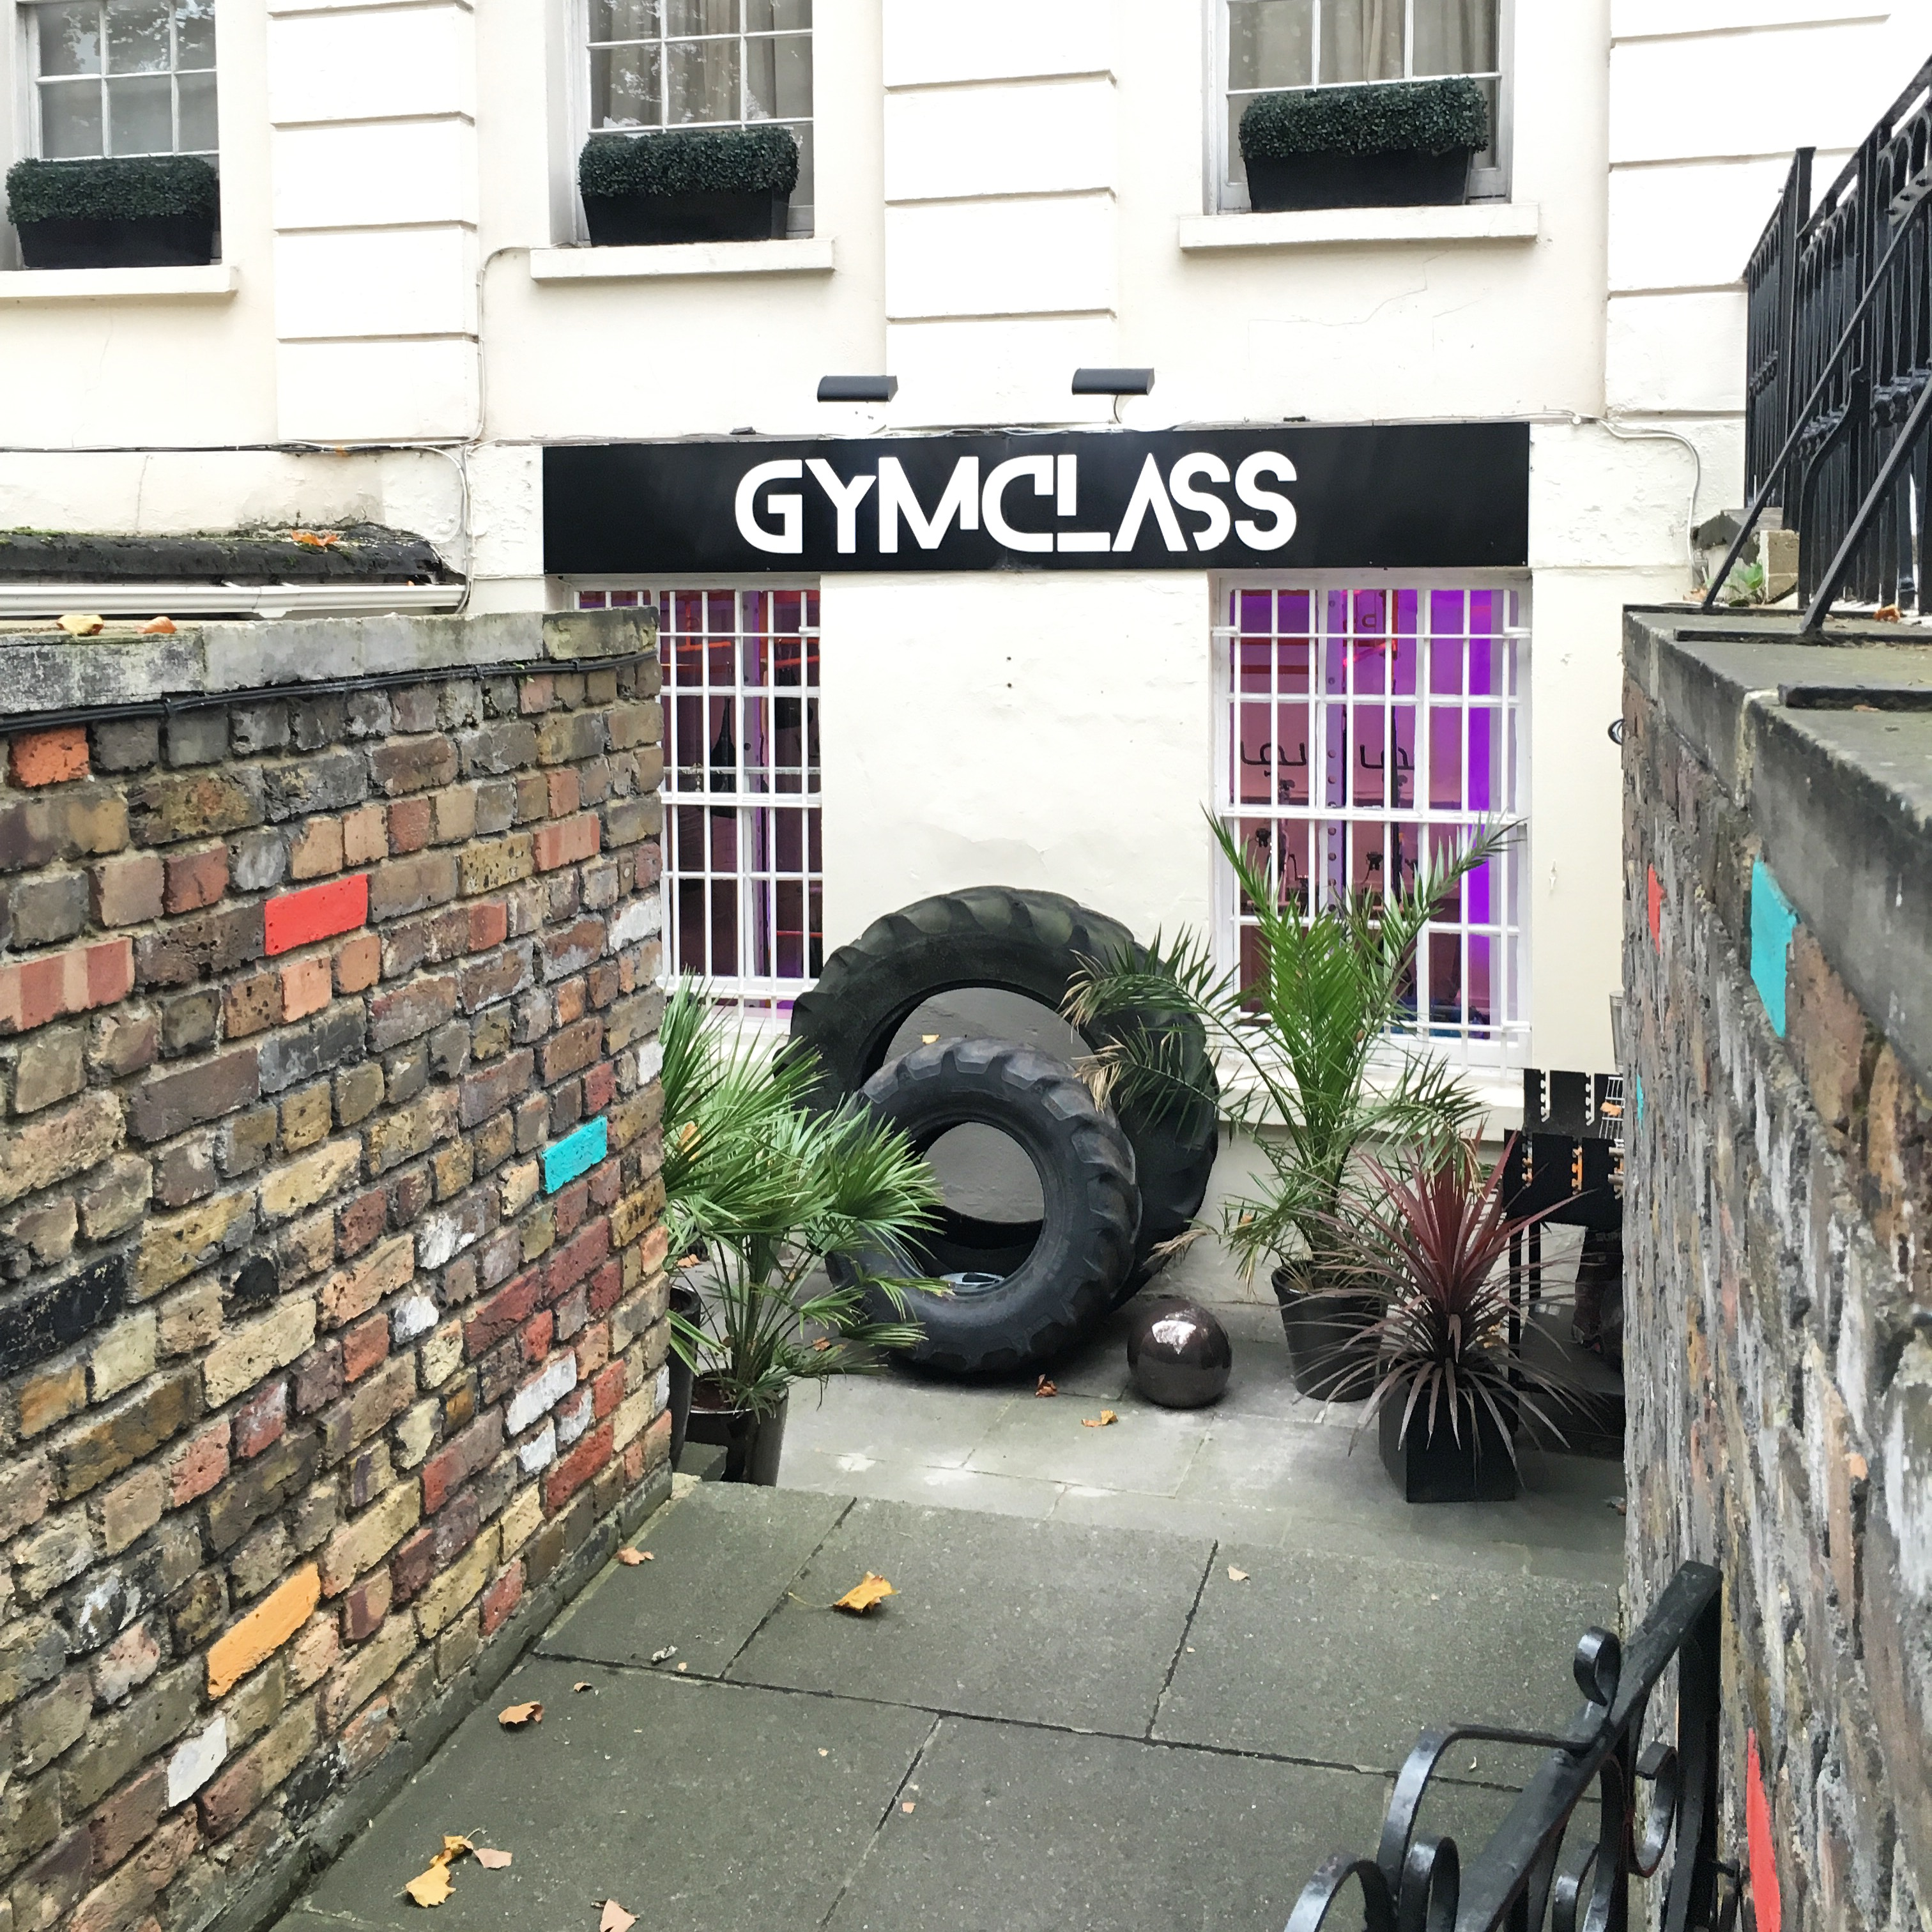 Unique Top  Classpass  Best Of The West  Healthy Living London With Magnificent Img With Easy On The Eye Pvz Garden Warfare  Also Bistro Garden Set In Addition Small Back Garden Design Ideas And Garden Incinerator Argos As Well As Garden Settee Additionally Playstation Plants Vs Zombies Garden Warfare From Healthylivinglondoncom With   Magnificent Top  Classpass  Best Of The West  Healthy Living London With Easy On The Eye Img And Unique Pvz Garden Warfare  Also Bistro Garden Set In Addition Small Back Garden Design Ideas From Healthylivinglondoncom